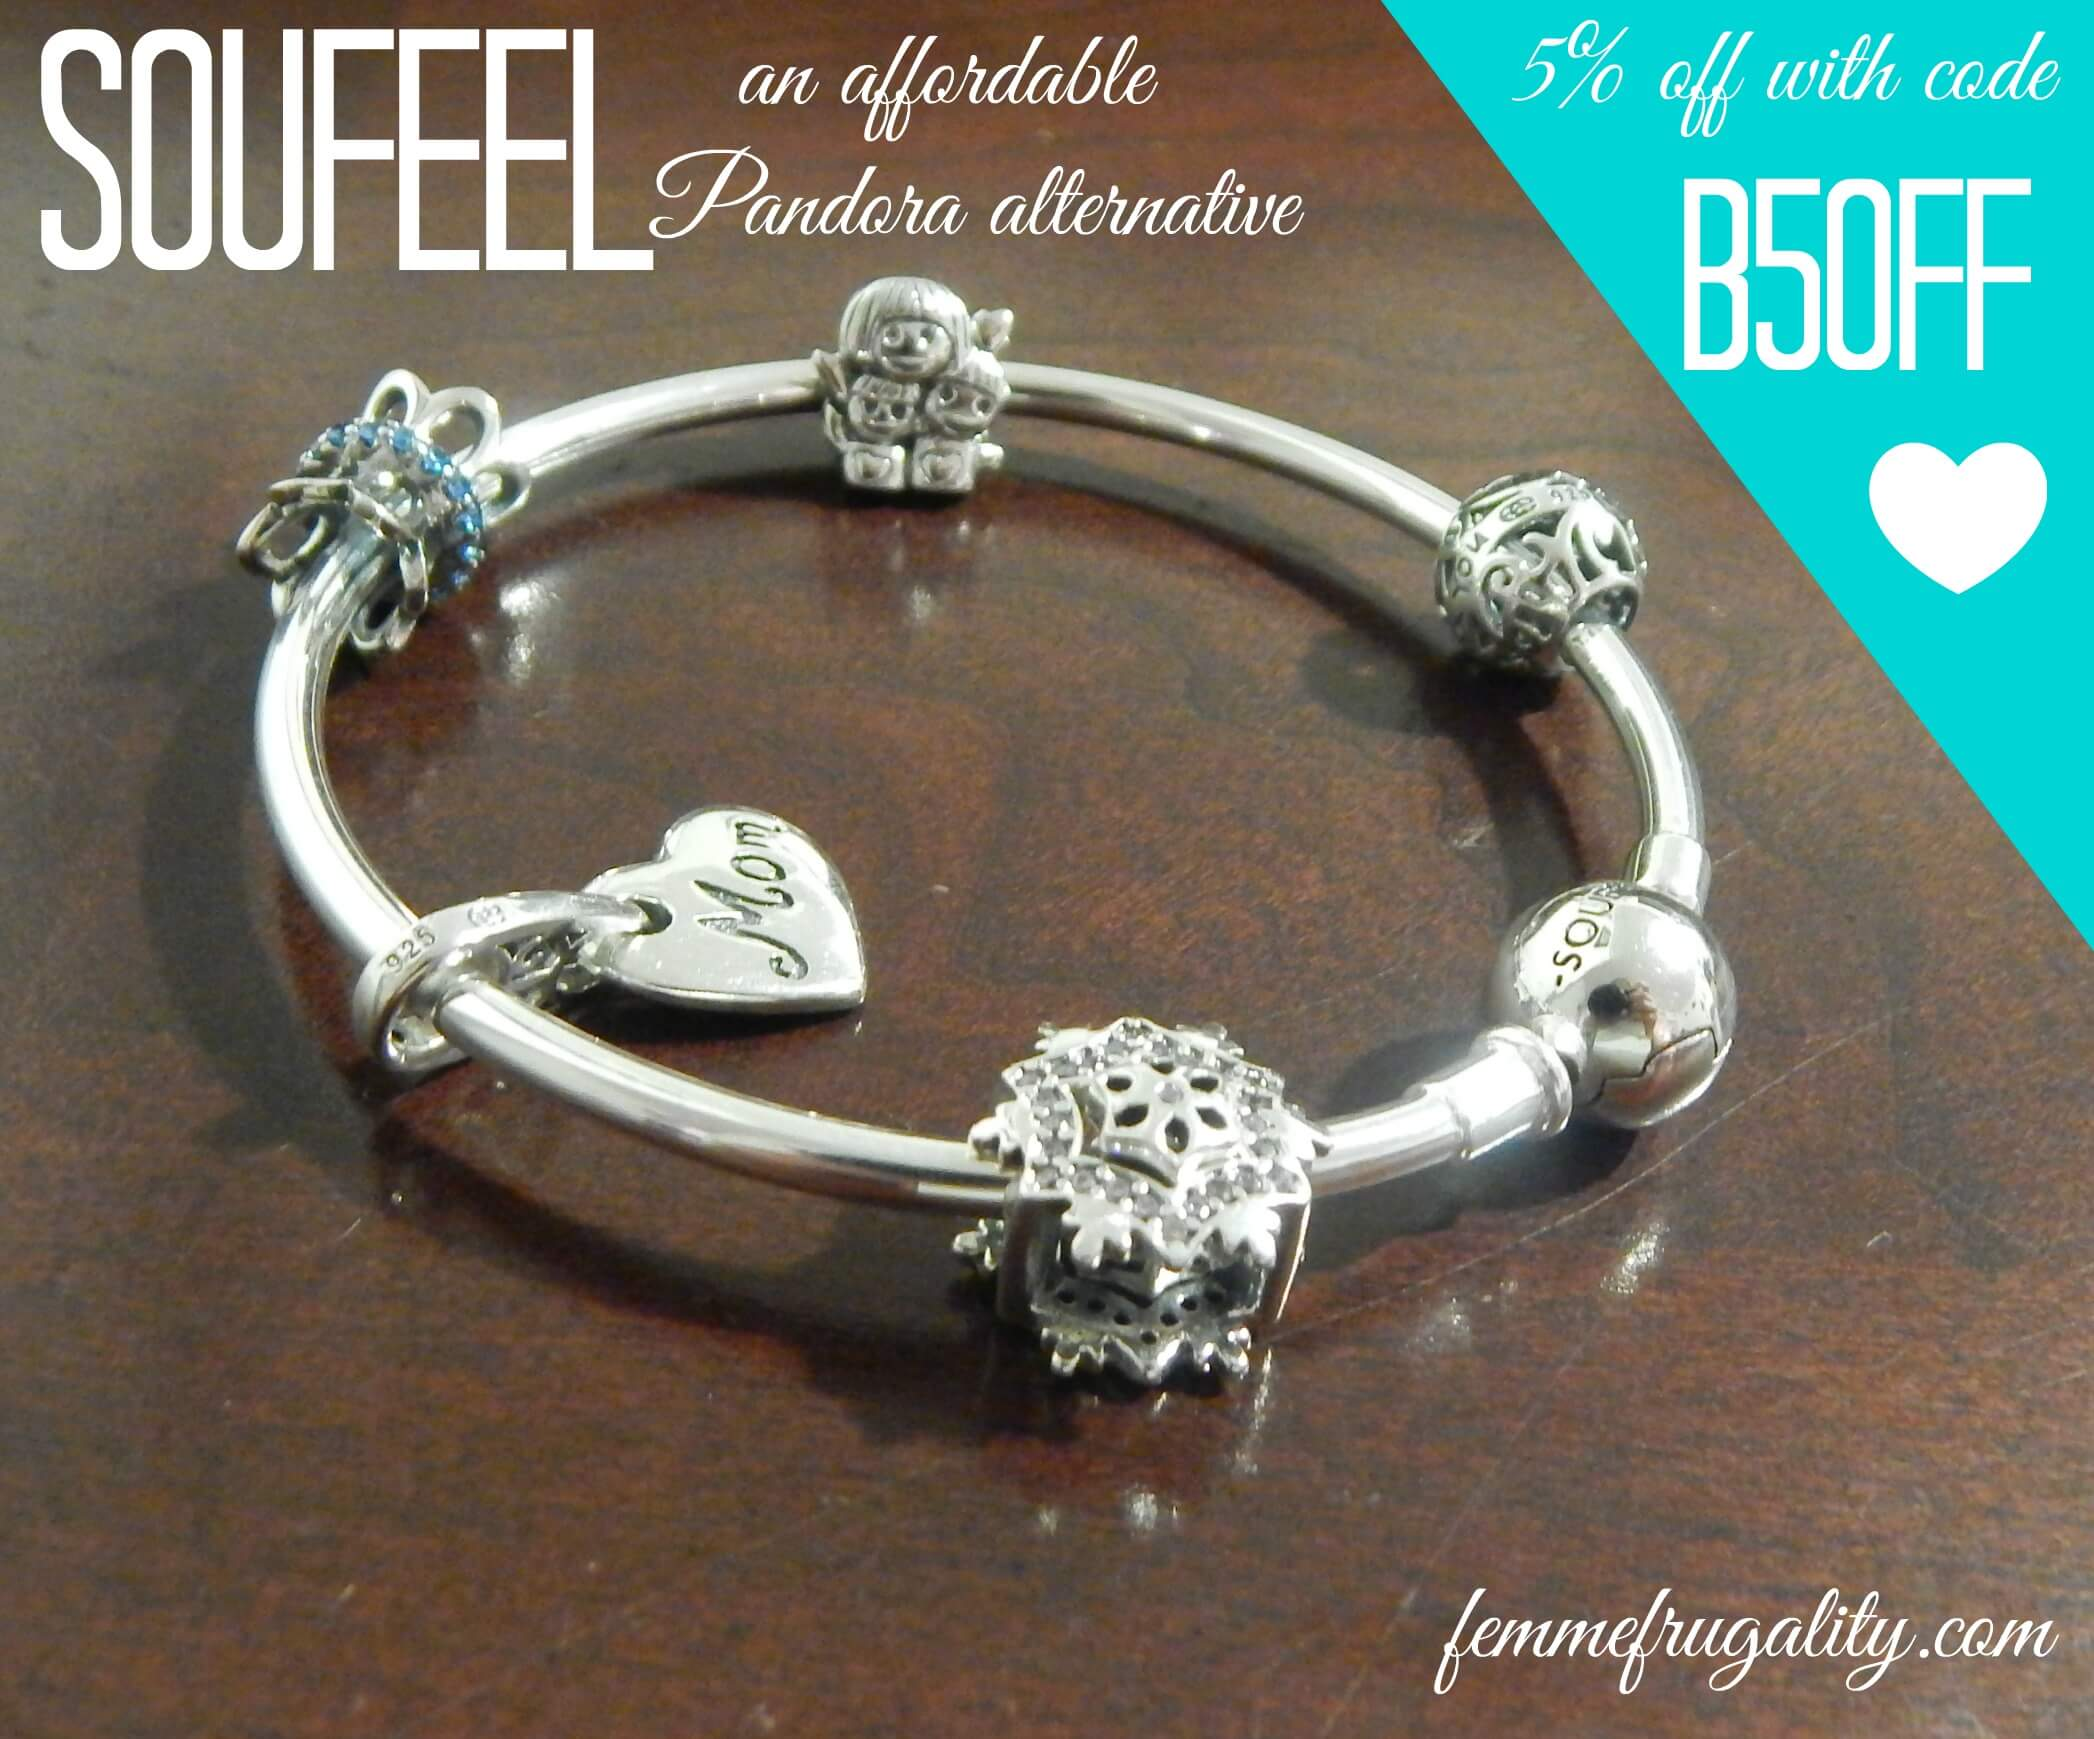 uk october set bangle estore en charms bangles pandora bracelet